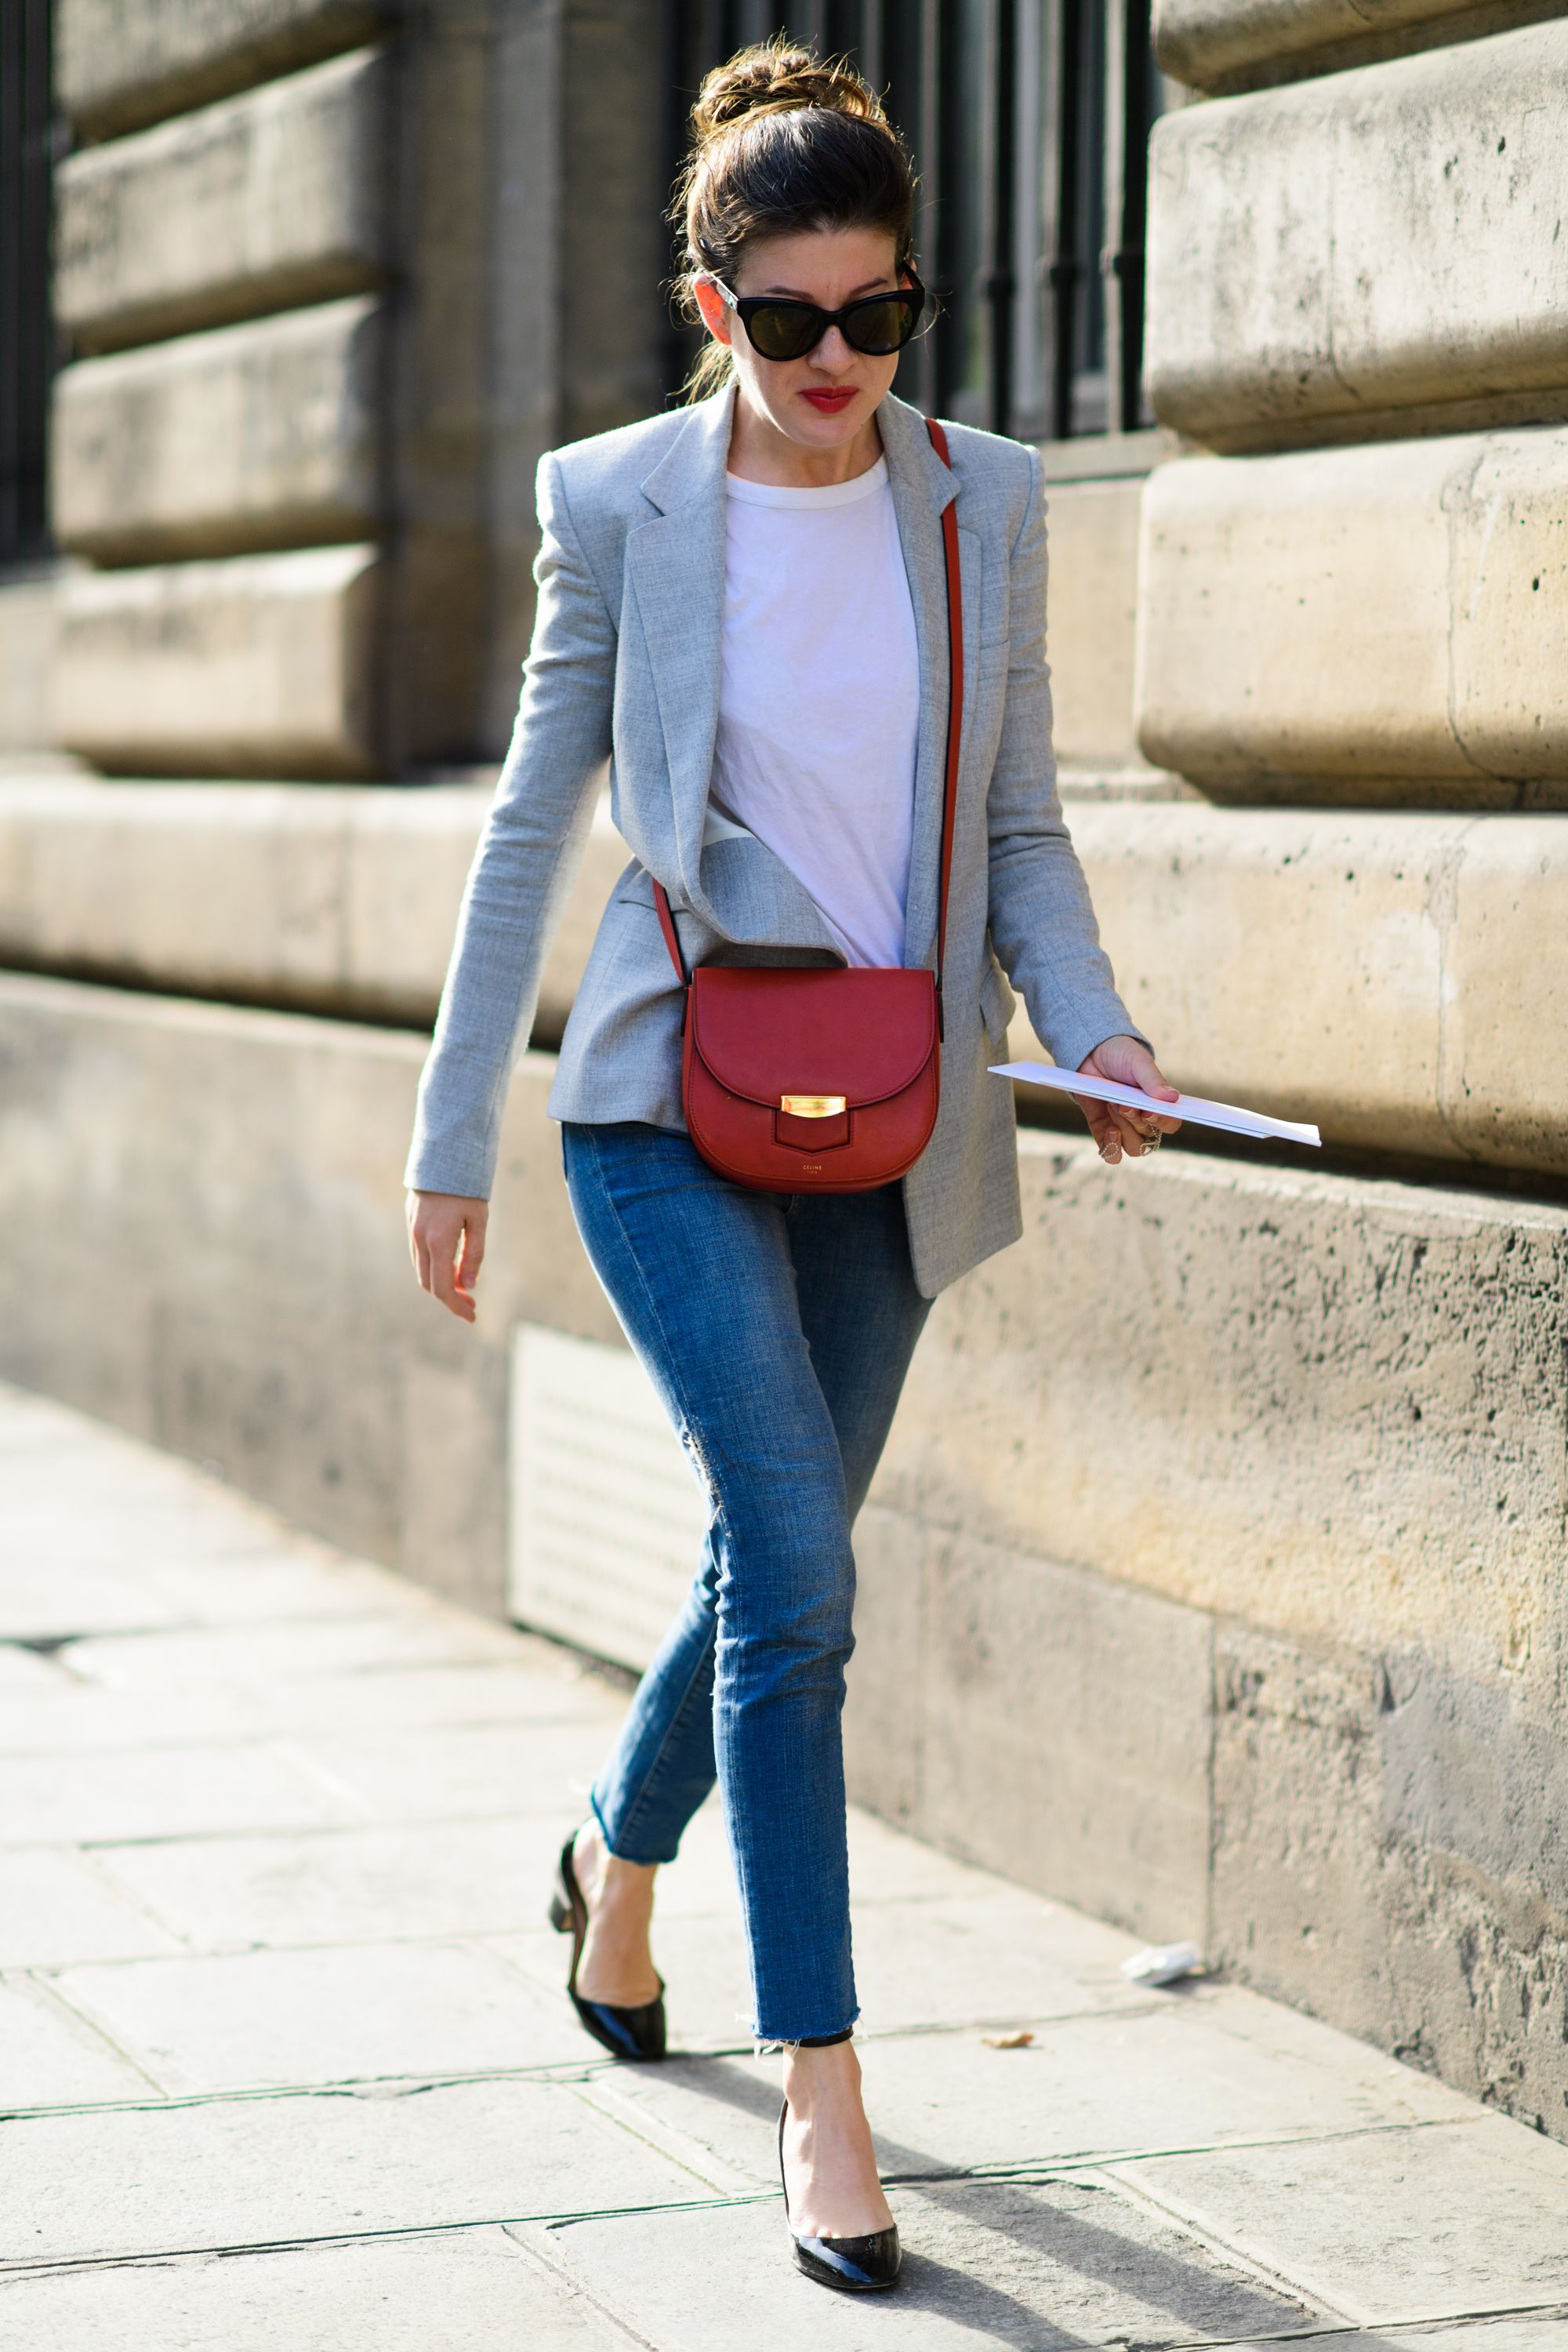 The Best Street Style from Paris Fashion Week More